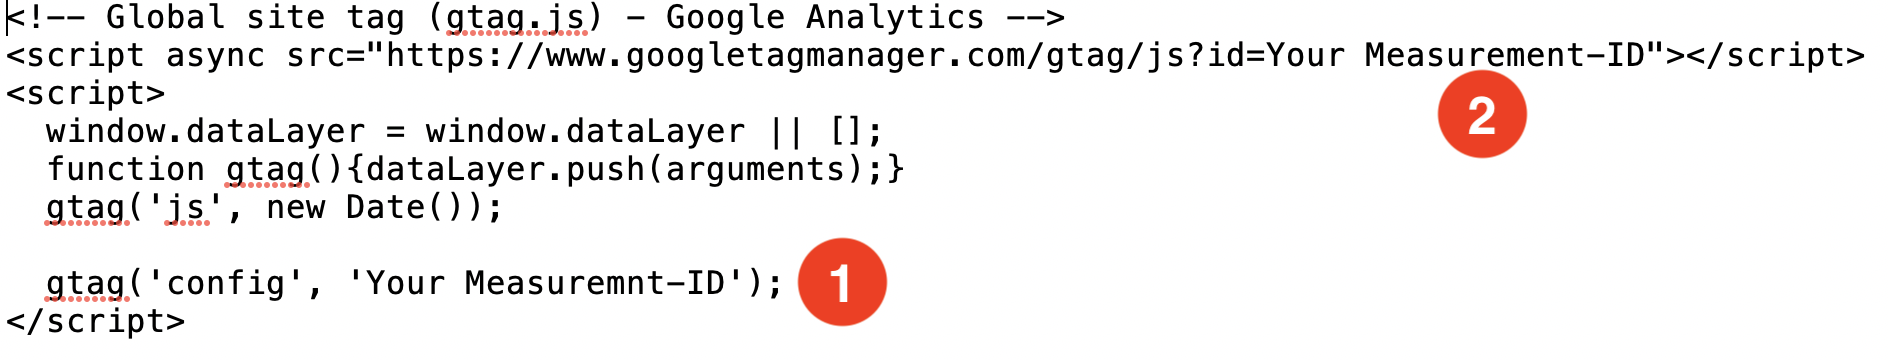 gtag.js-with-your-measurement-id-ga4-ryte universal analytics Google Analytics 4 property Google Analytics 4 GA4 property GA4